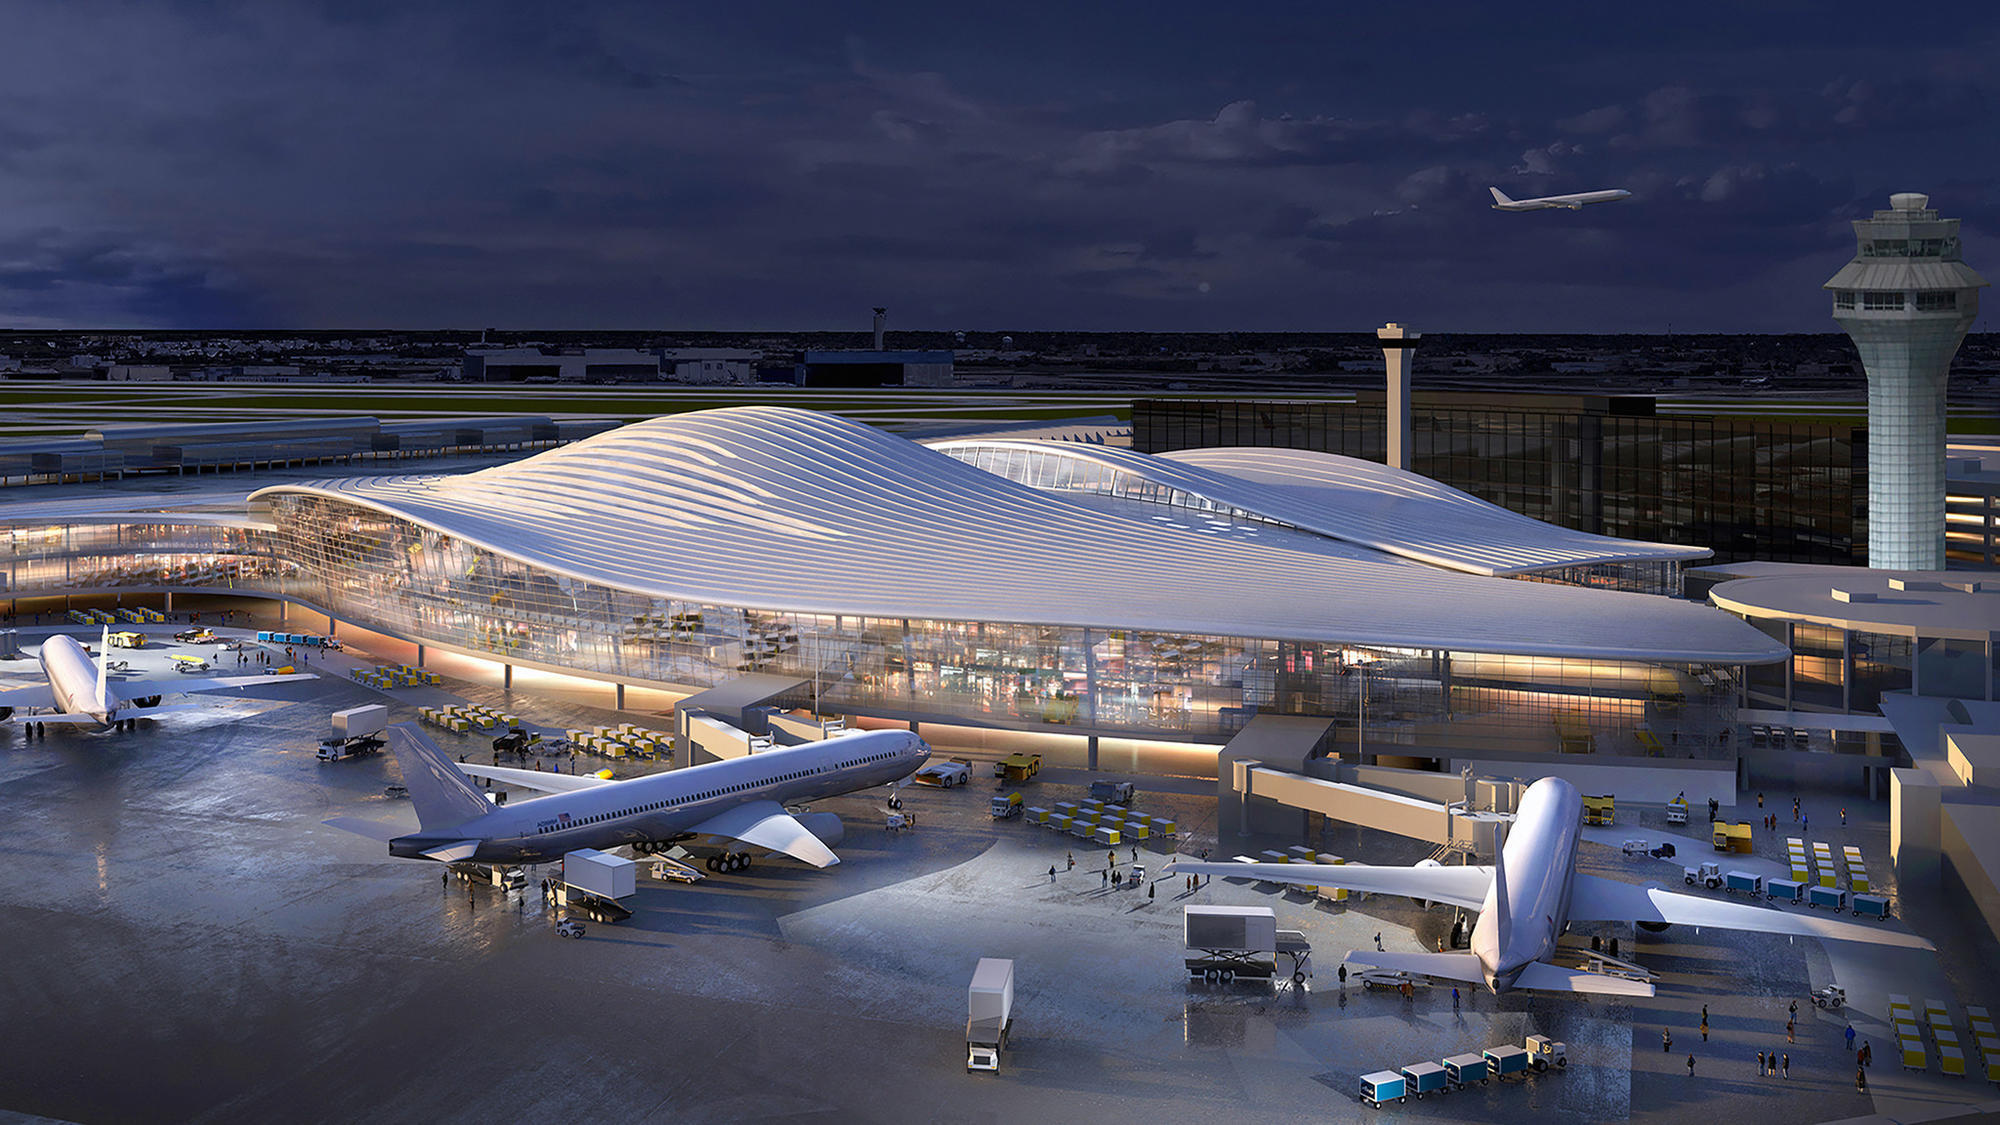 O'Hare design process smells of backroom deals. The public deserves to know who's evaluating the plans.